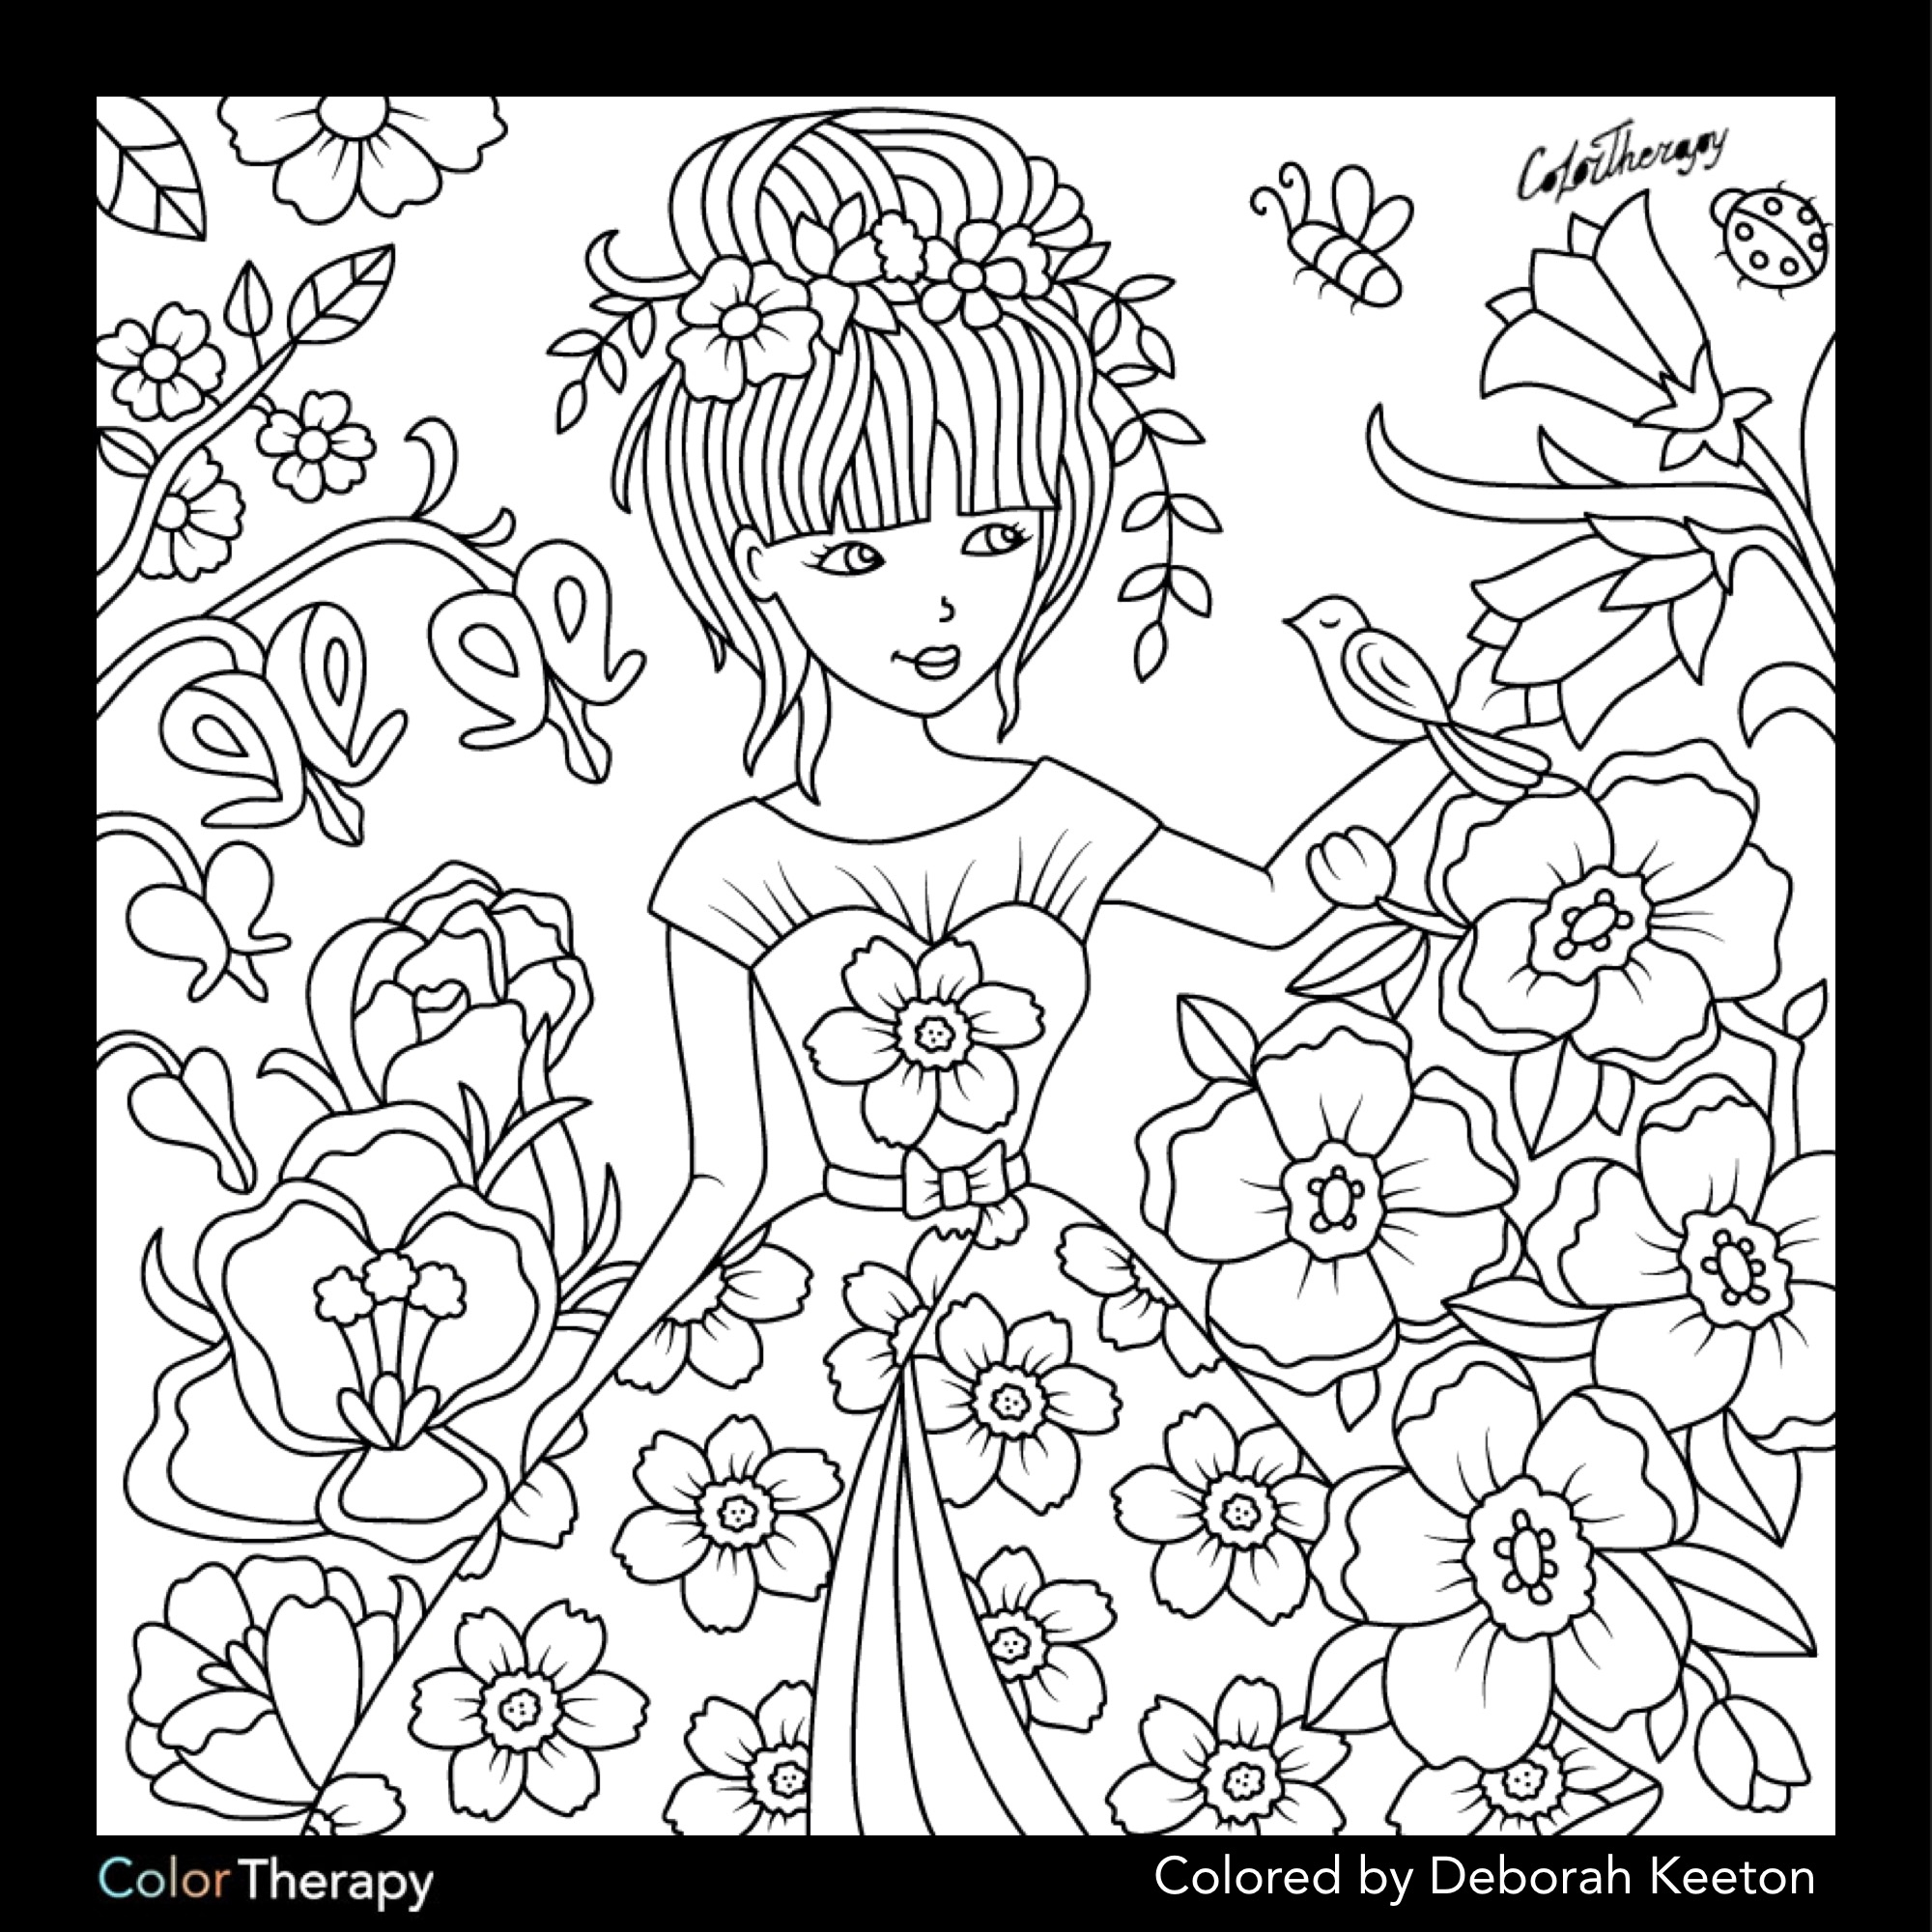 2000x2000 Coloring Pages Roses Download Free Coloring Books New Coloring